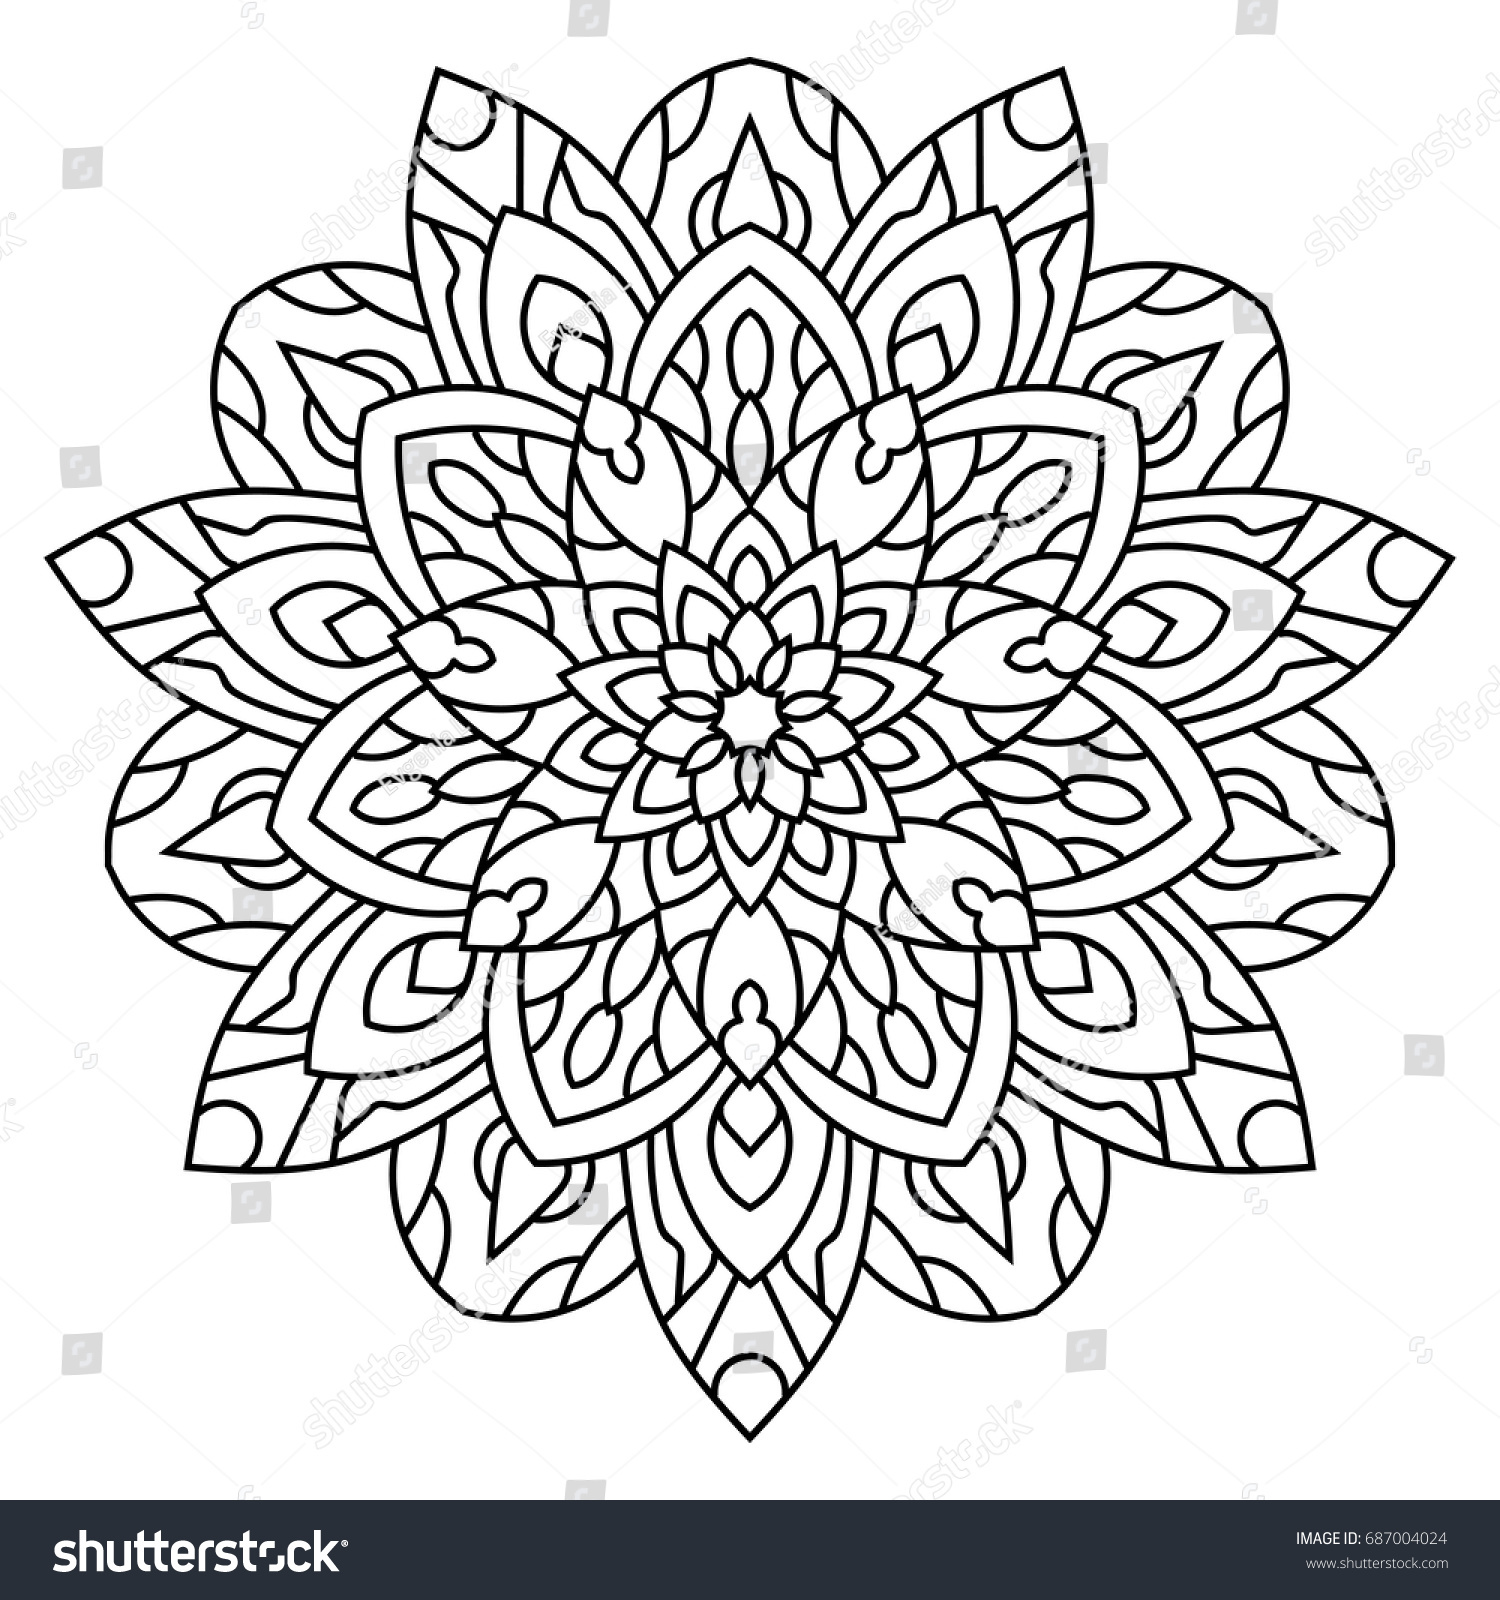 Vector Contour Adult Coloring Black And White Illustration Design Element Page Mandala Floral Pattern Ethnic Style Boho